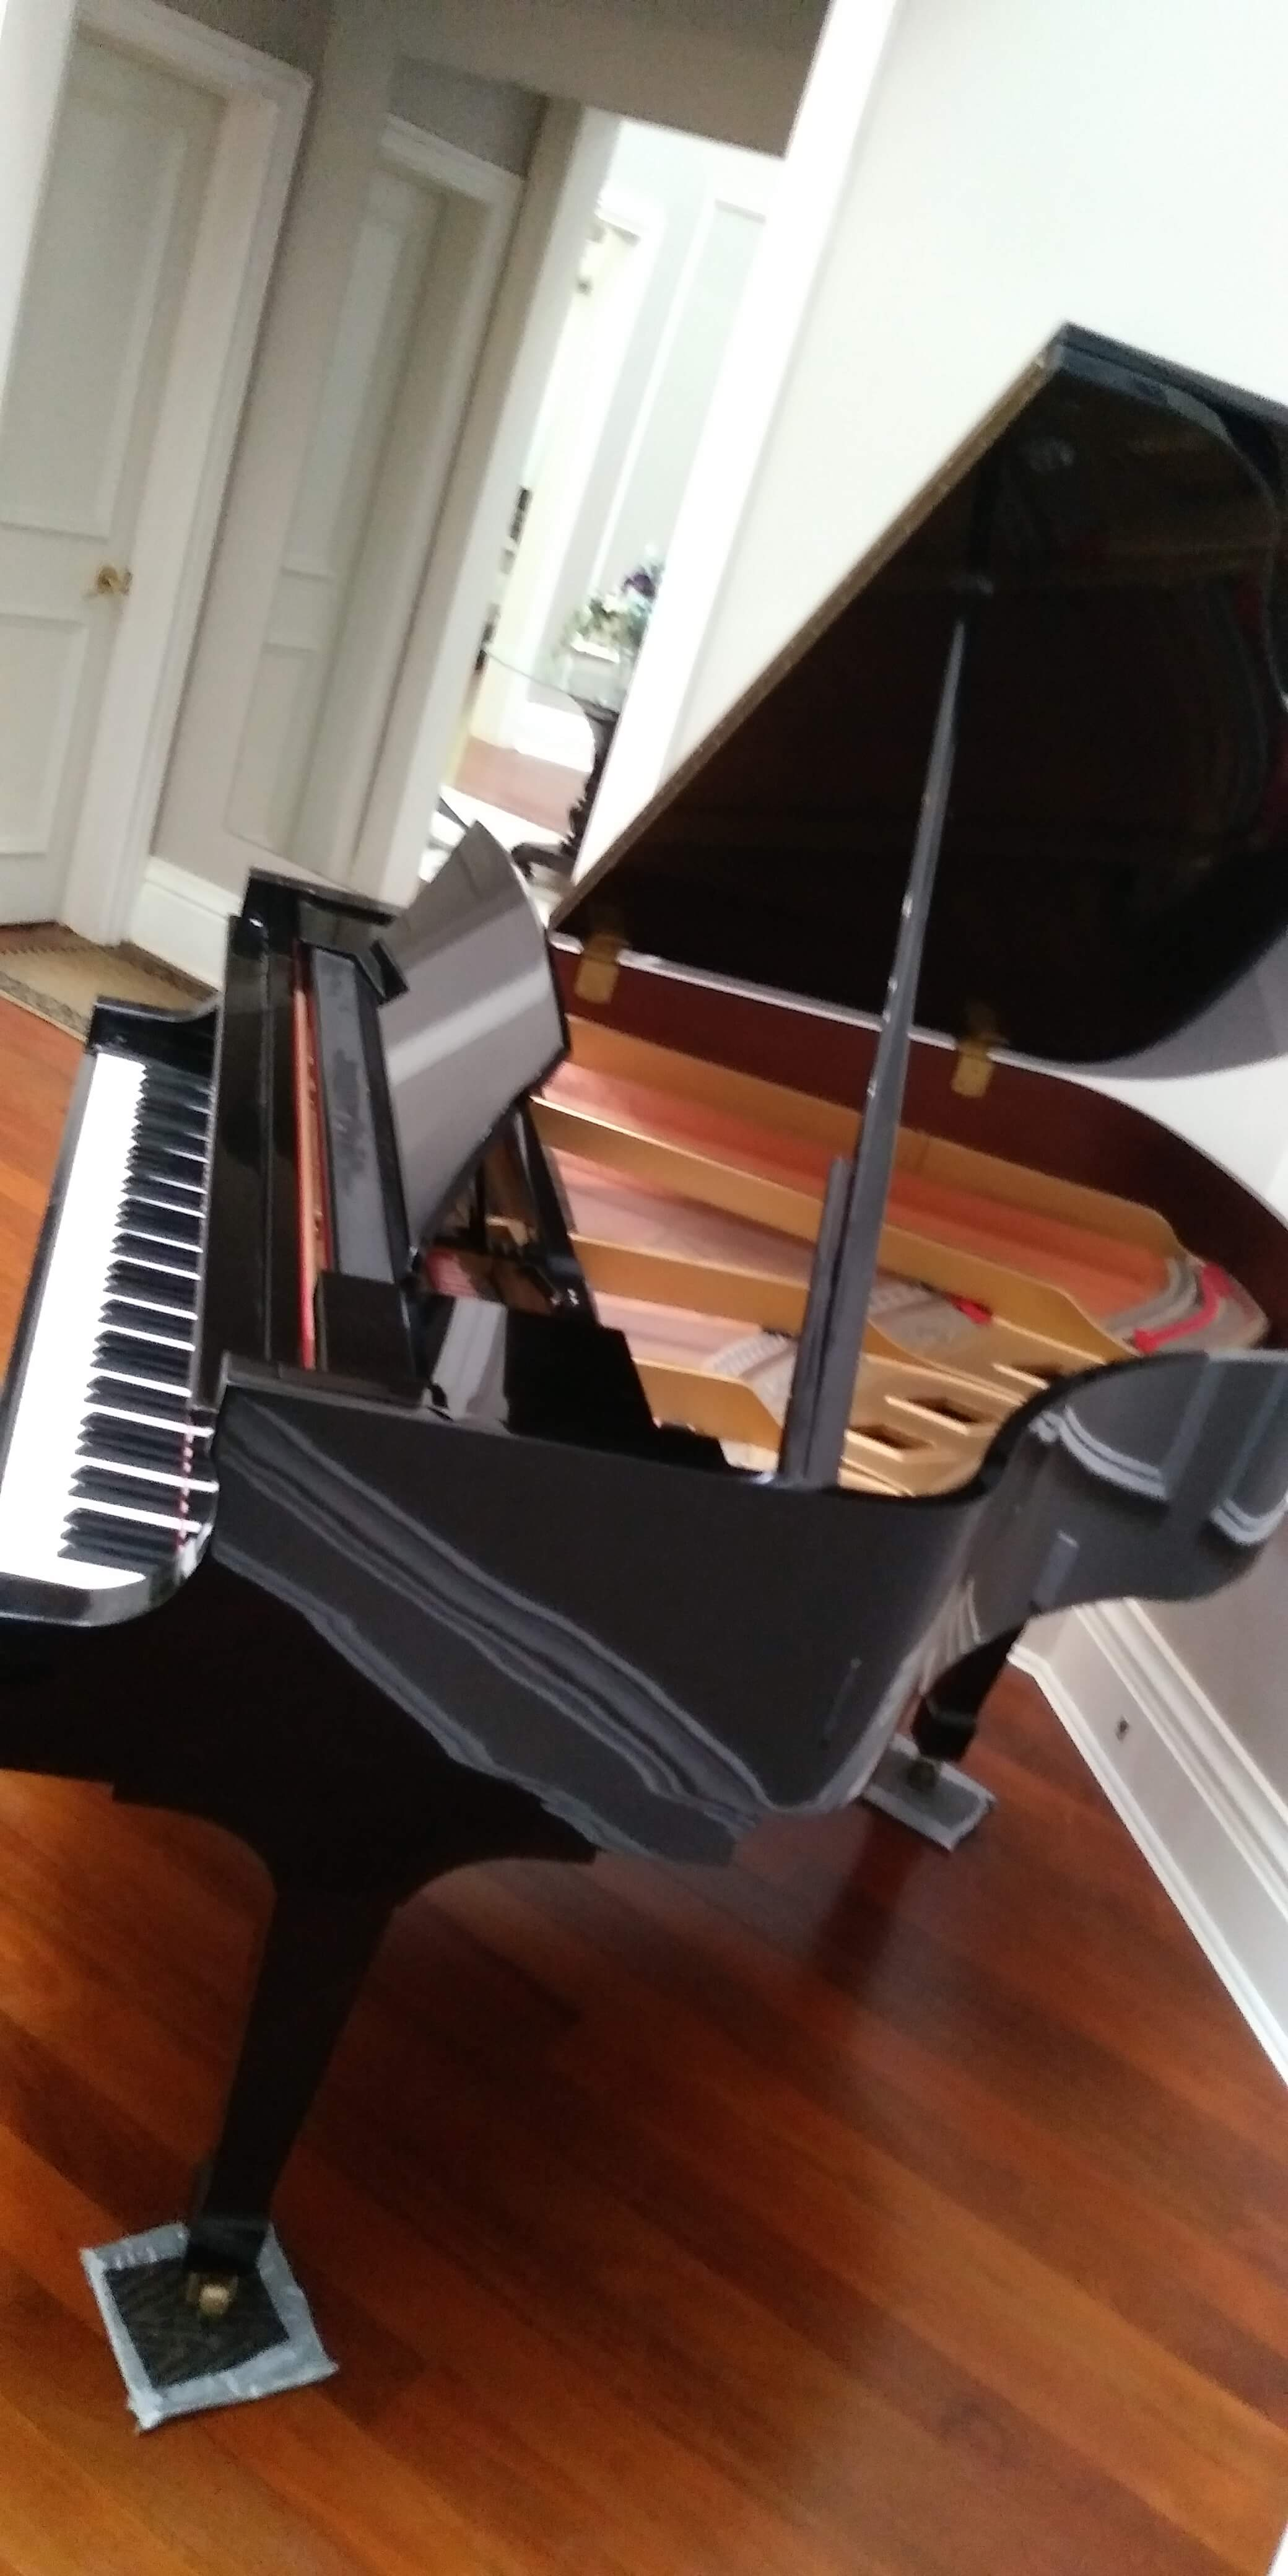 Specialized Piano Movers Ottawa, ON  | Piano Moving And Tuning